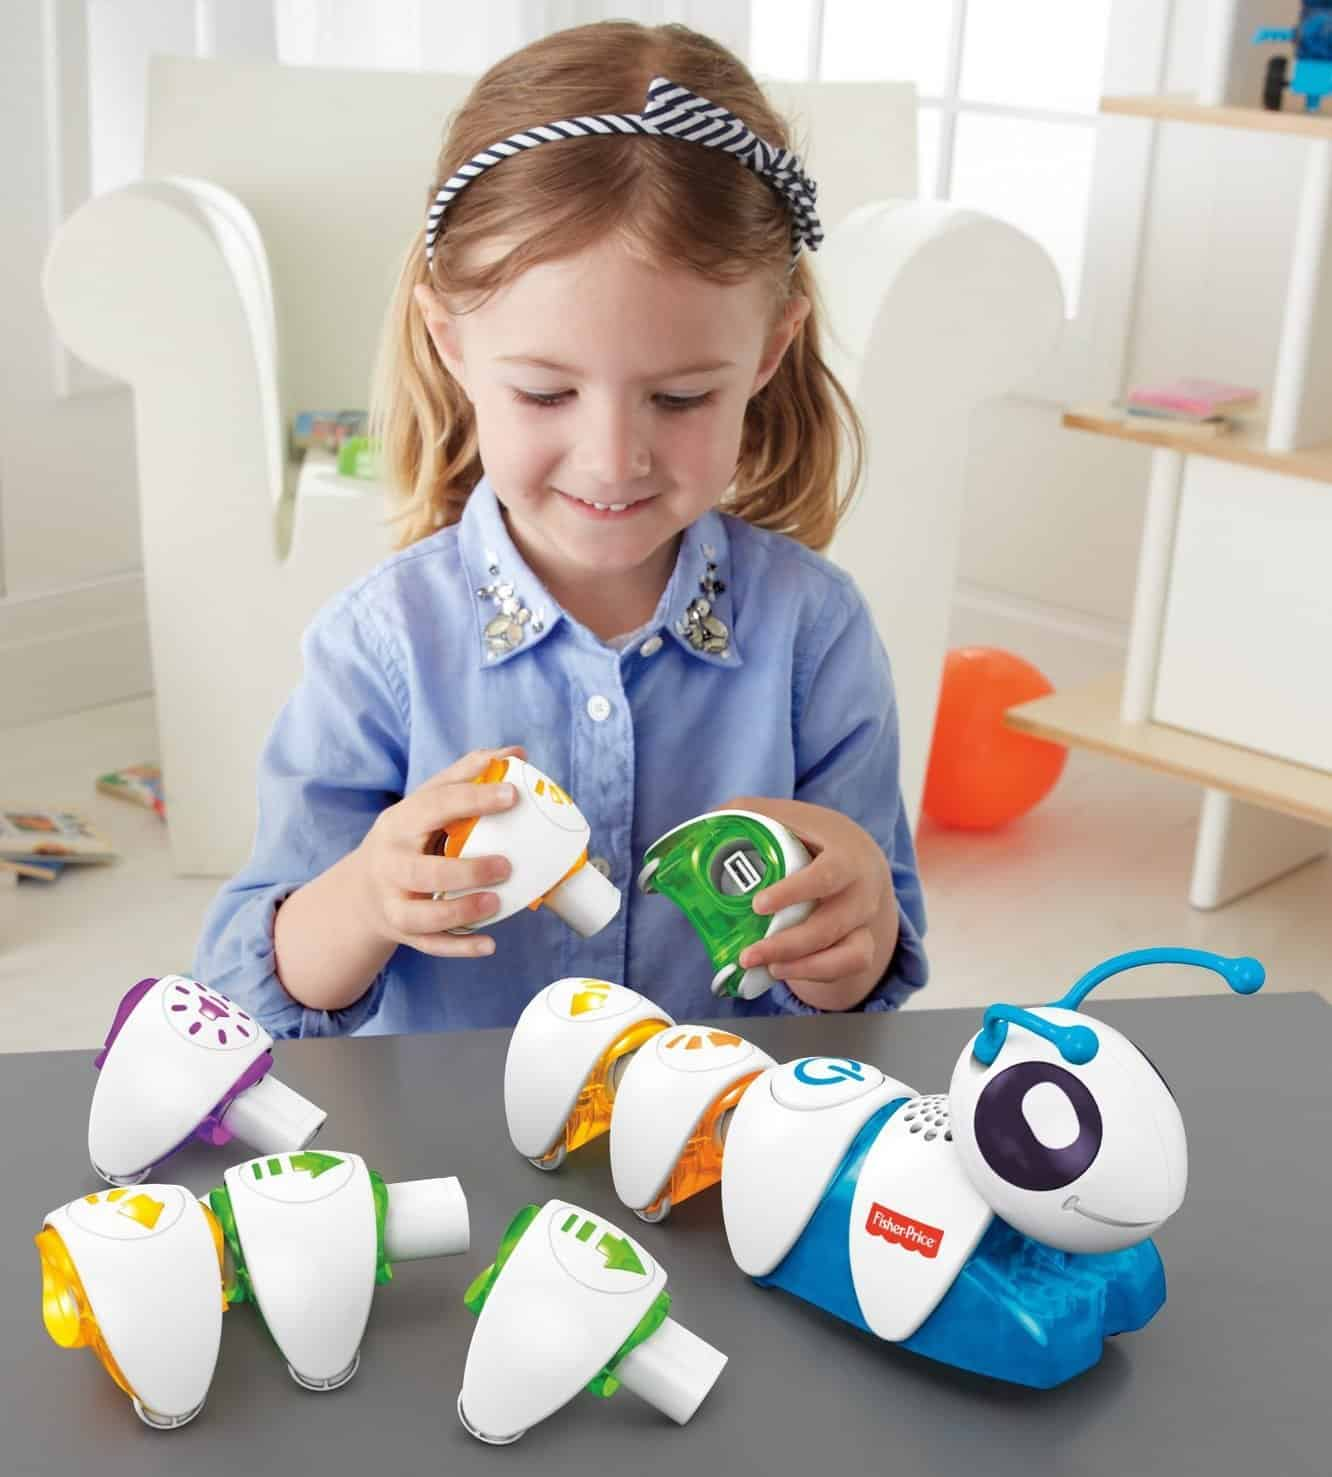 Fisher prices Code-A-Pillar is one of the best stem toys for coding and programming for preschoolers